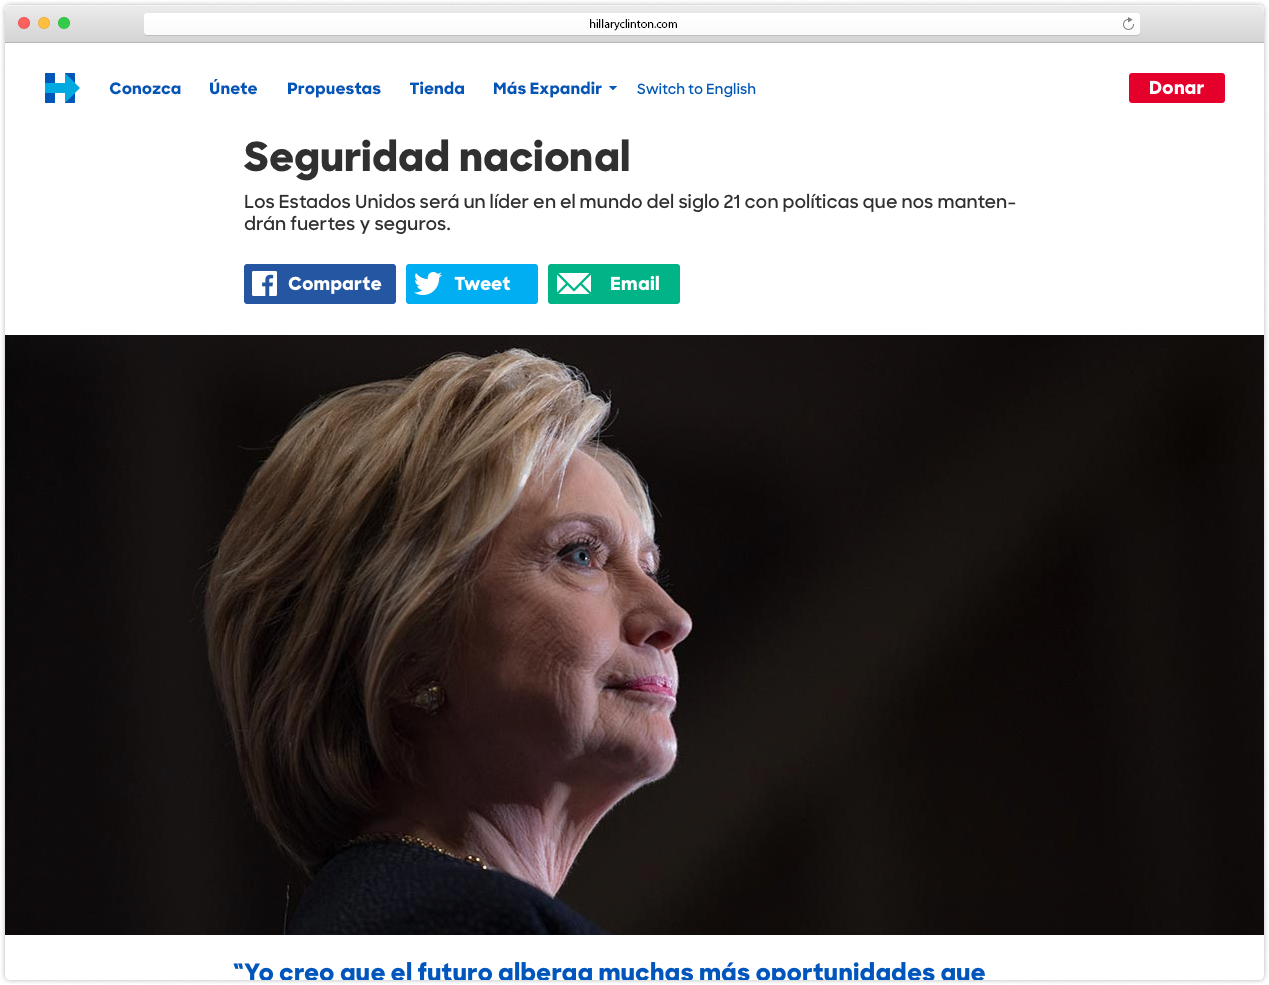 Policy Page (in Spanish)